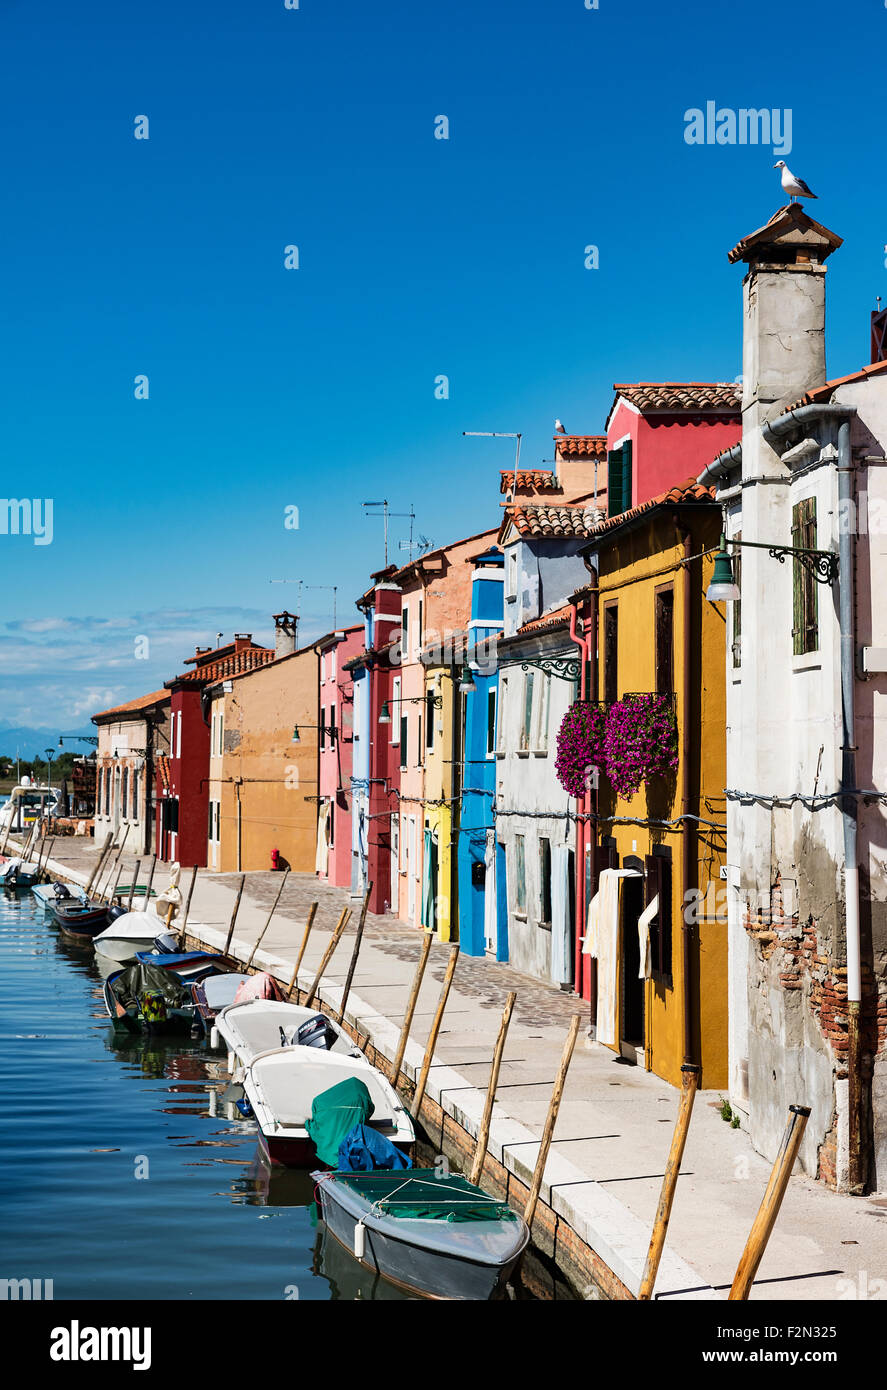 Colorful burano italy burano tourism - Colorful Home Facades In The Venetian Fishing Village Island Of Burano Italy